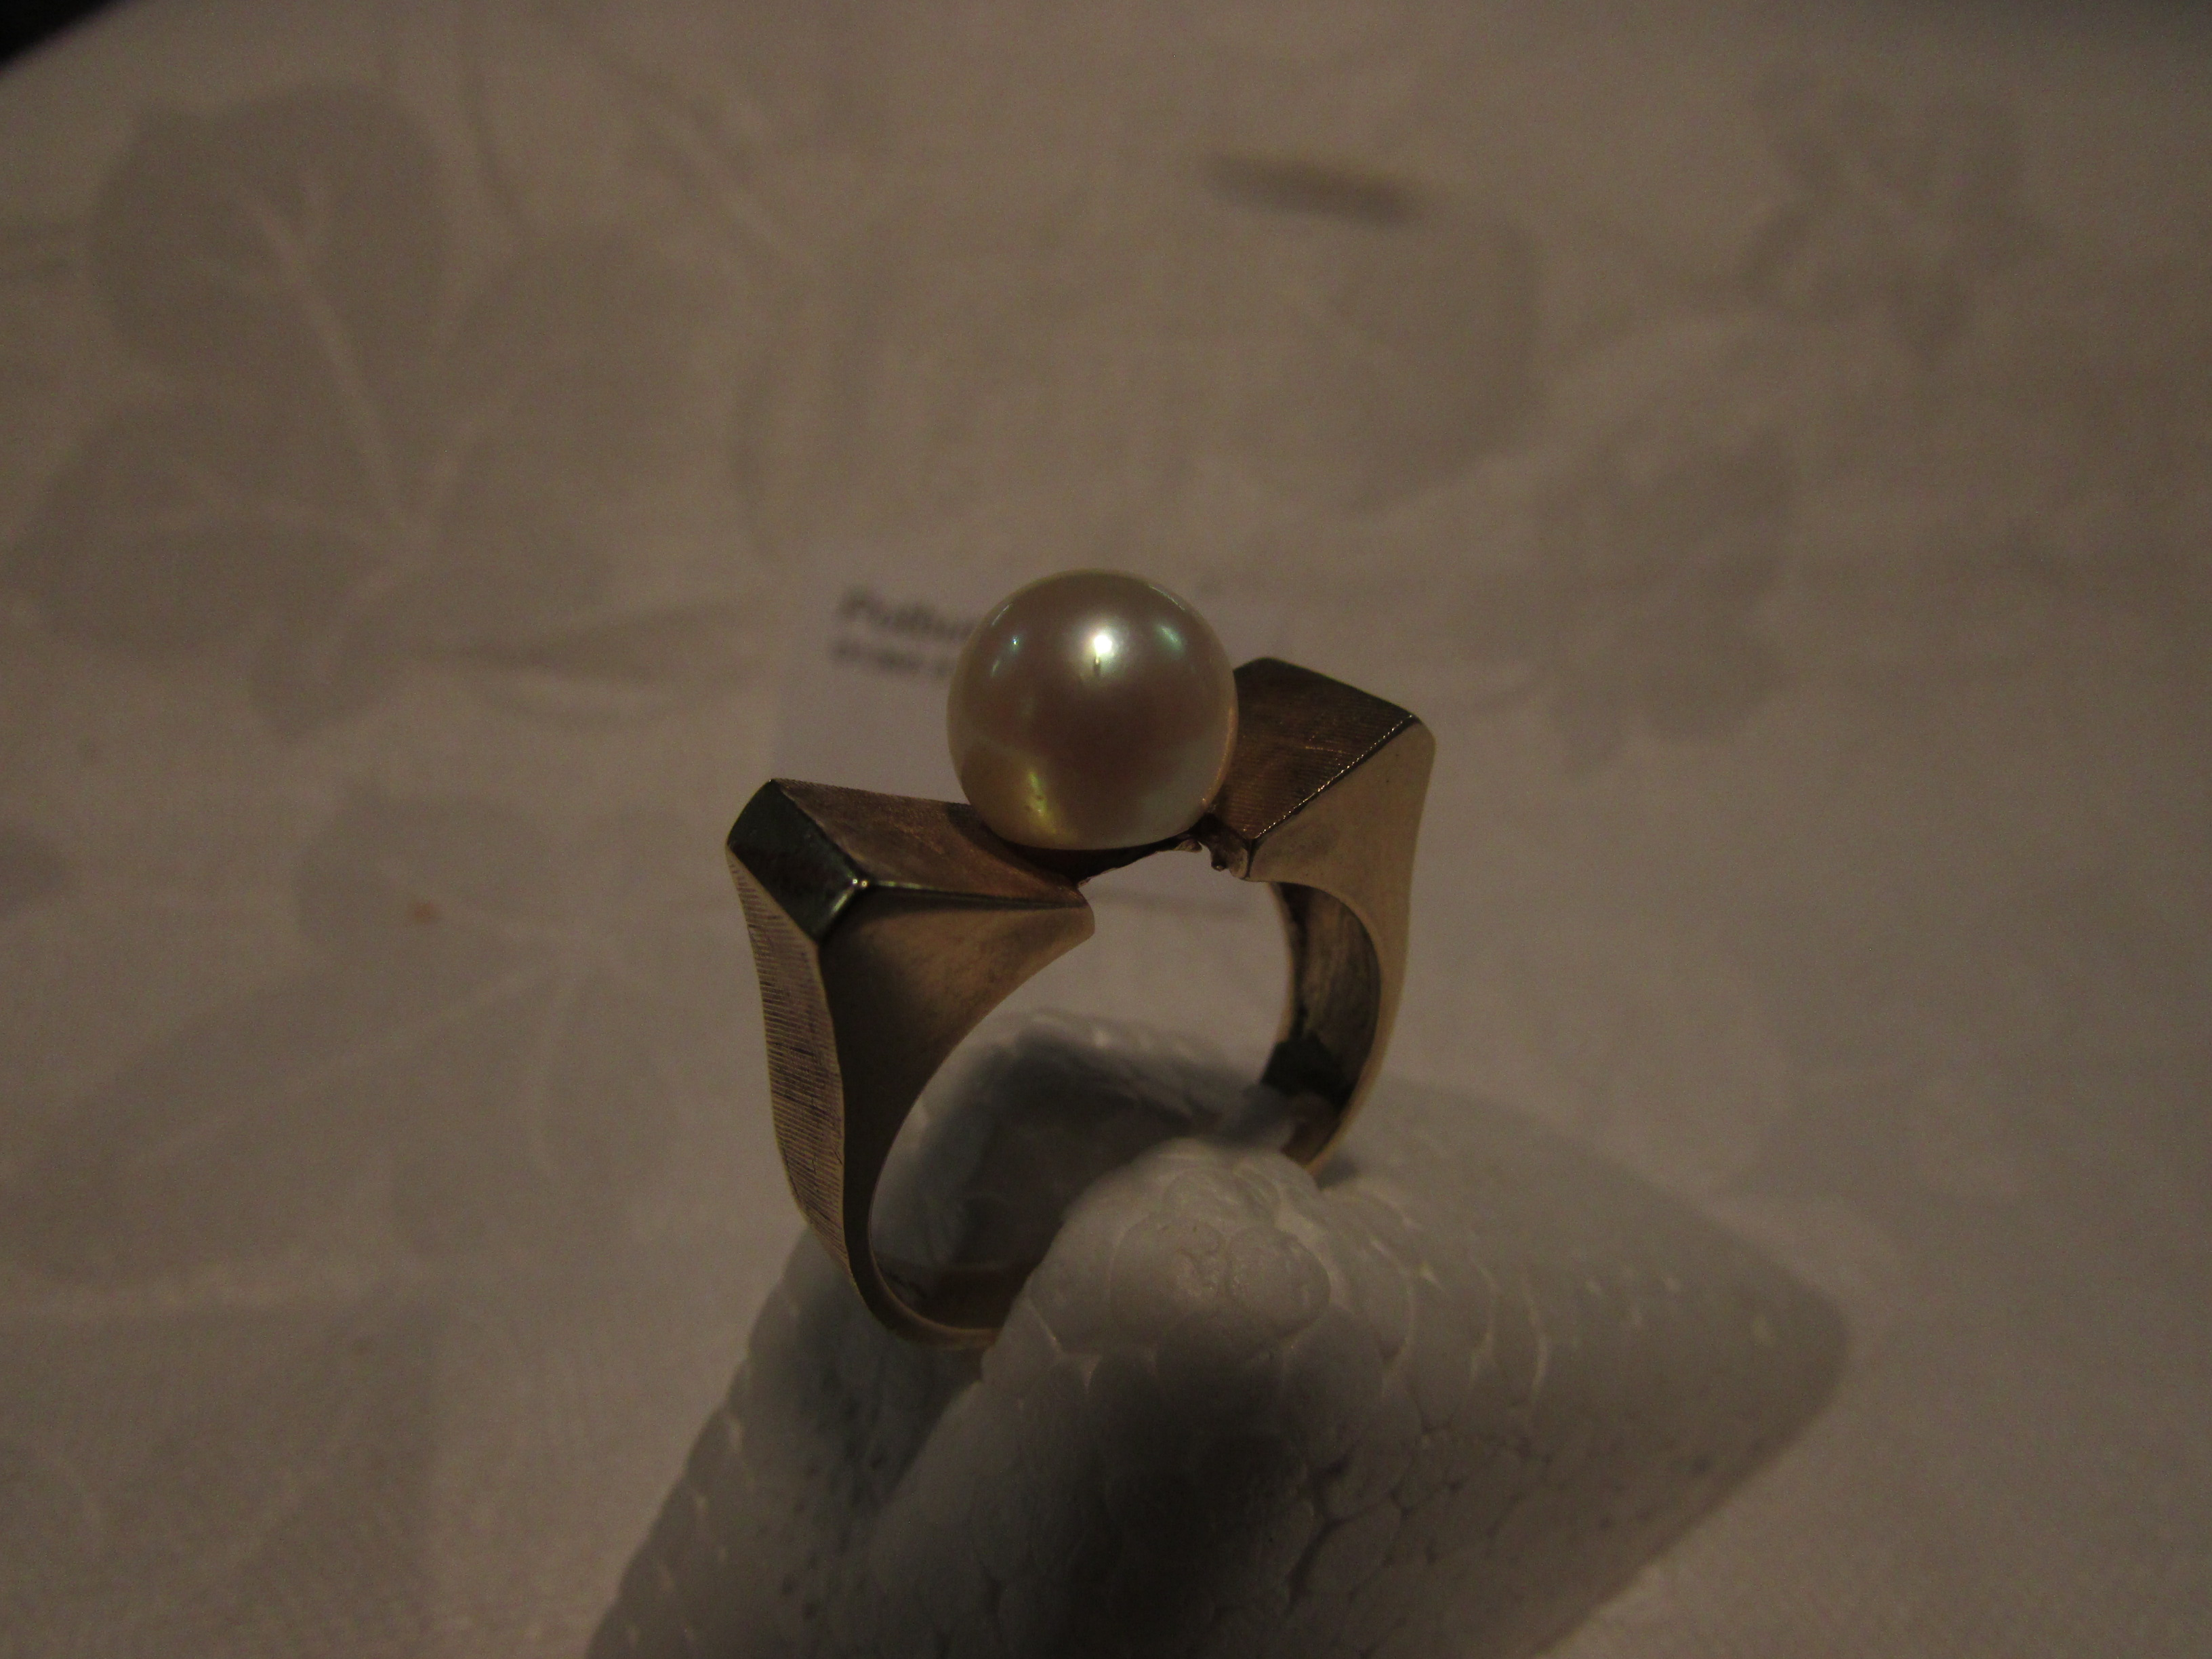 Lot 151 - Gold ring stamped 14K, set with a cultured pearl in an indented setting and machined finish at the